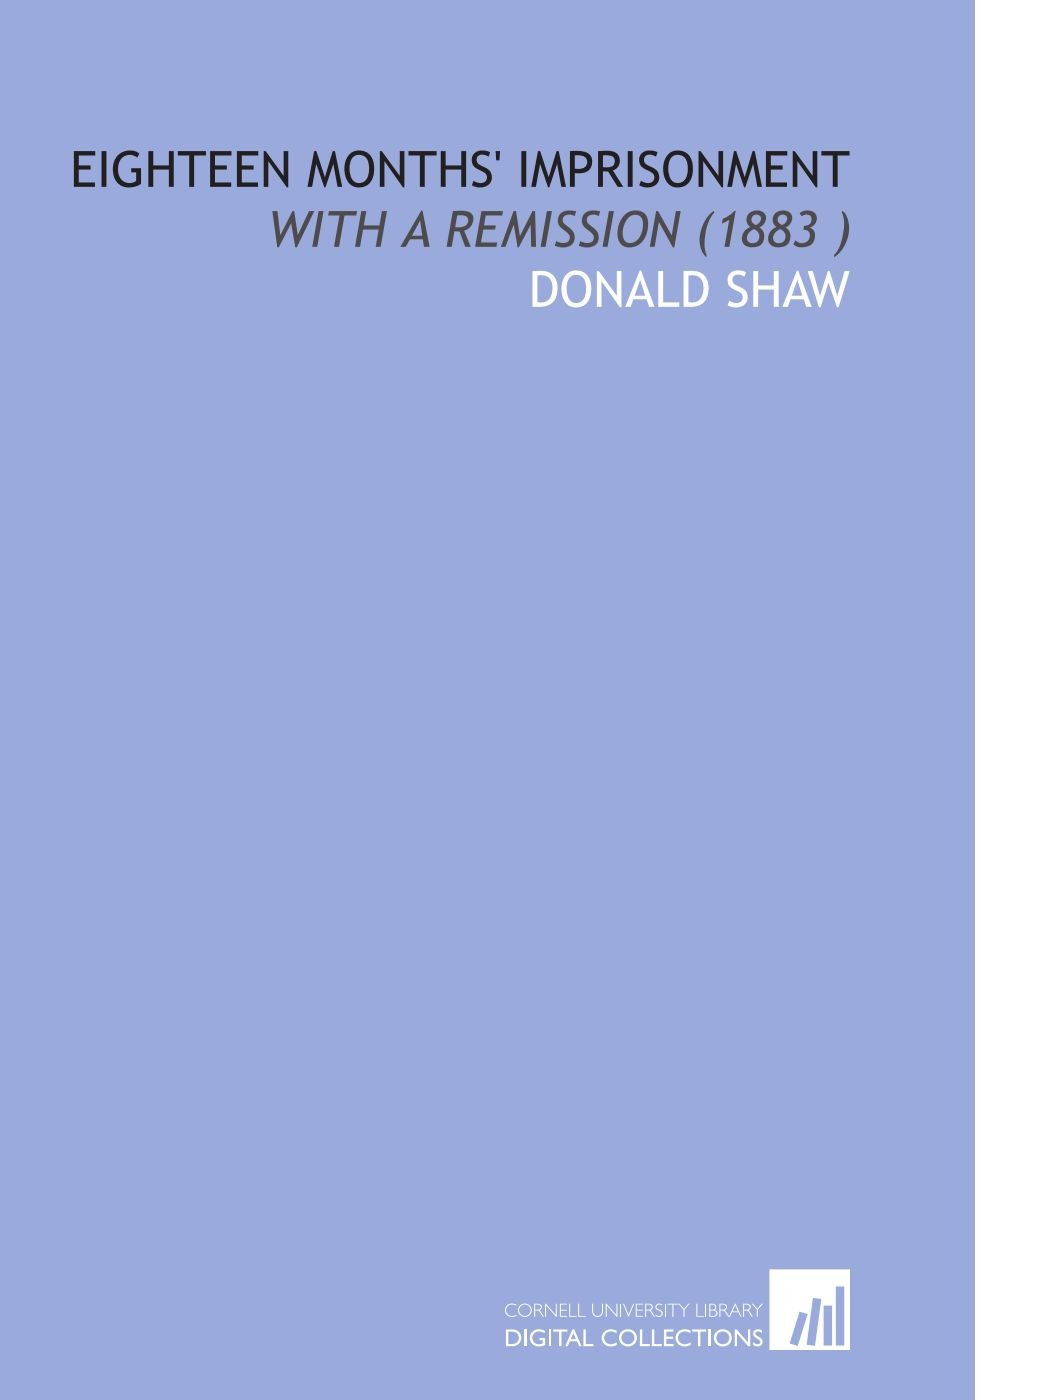 Download Eighteen Months' Imprisonment: With a Remission (1883 ) ebook